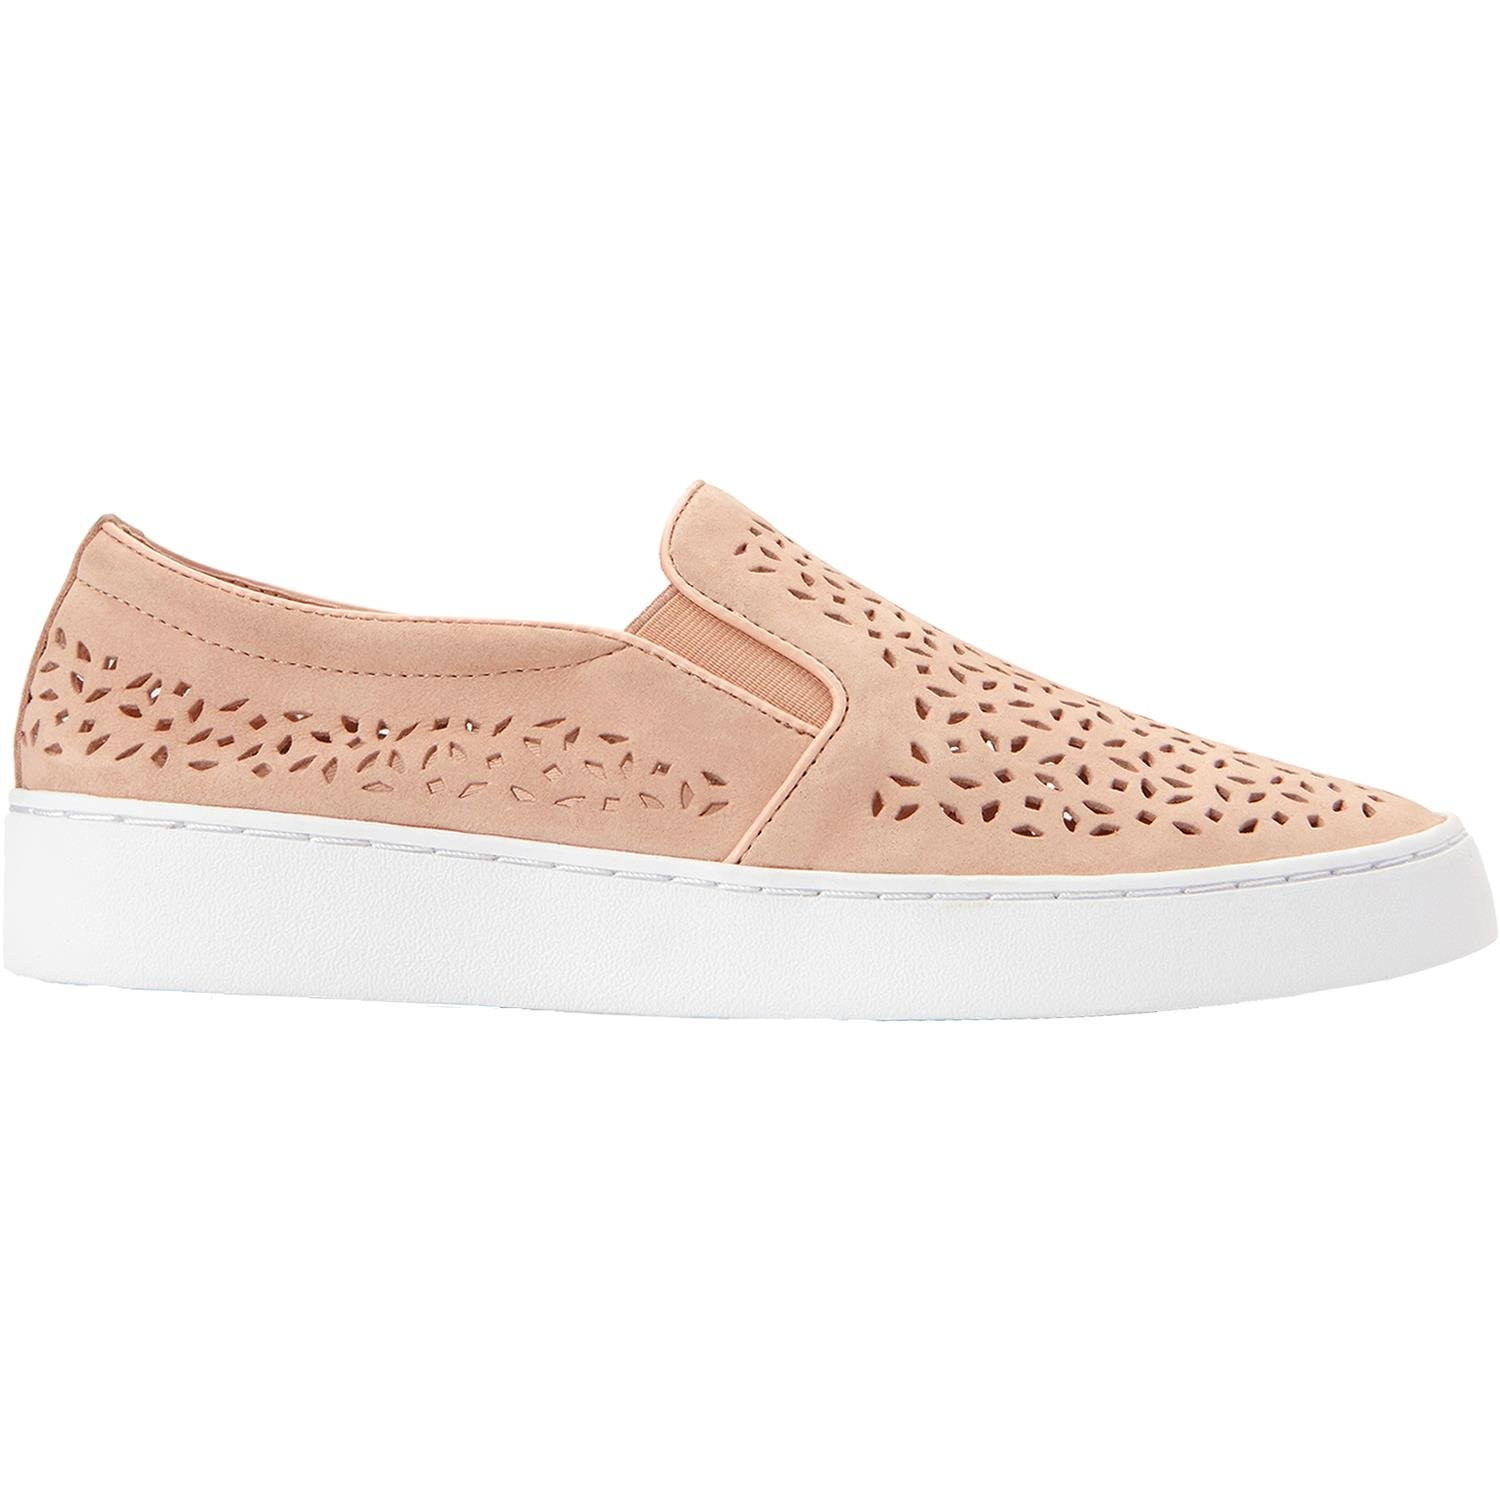 Vionic New Women's Splendid Midi Perf Slip On Dusty Pink 10